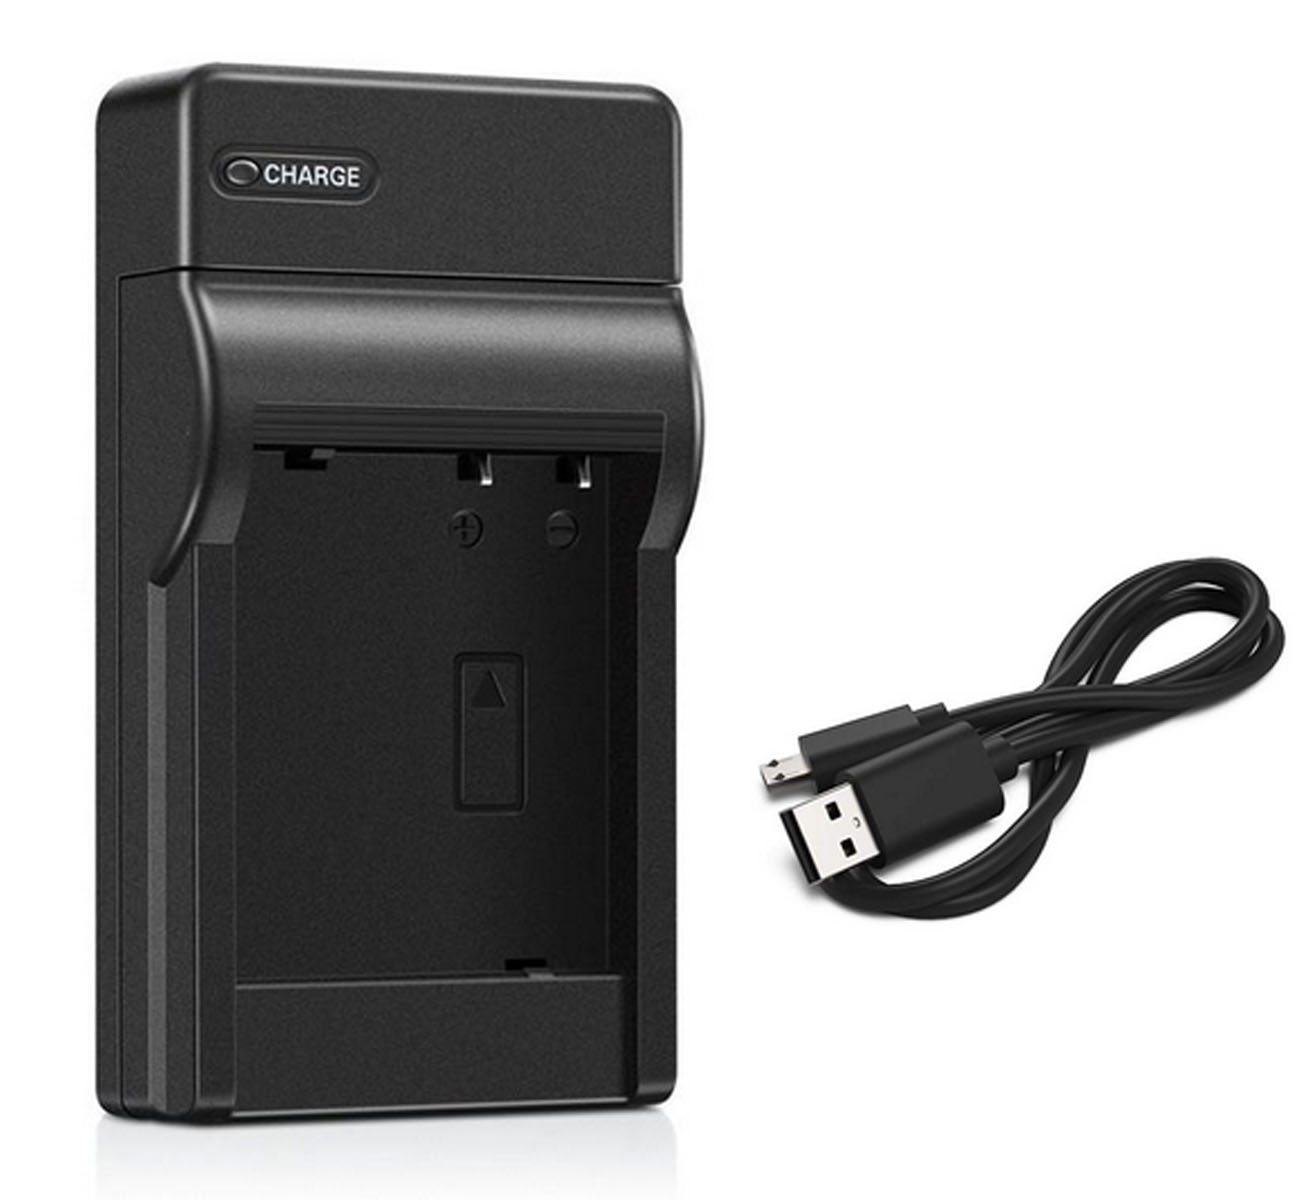 Battery Charger for Samsung SCD303 SCD305 SCD307 Digital Video Camcorder